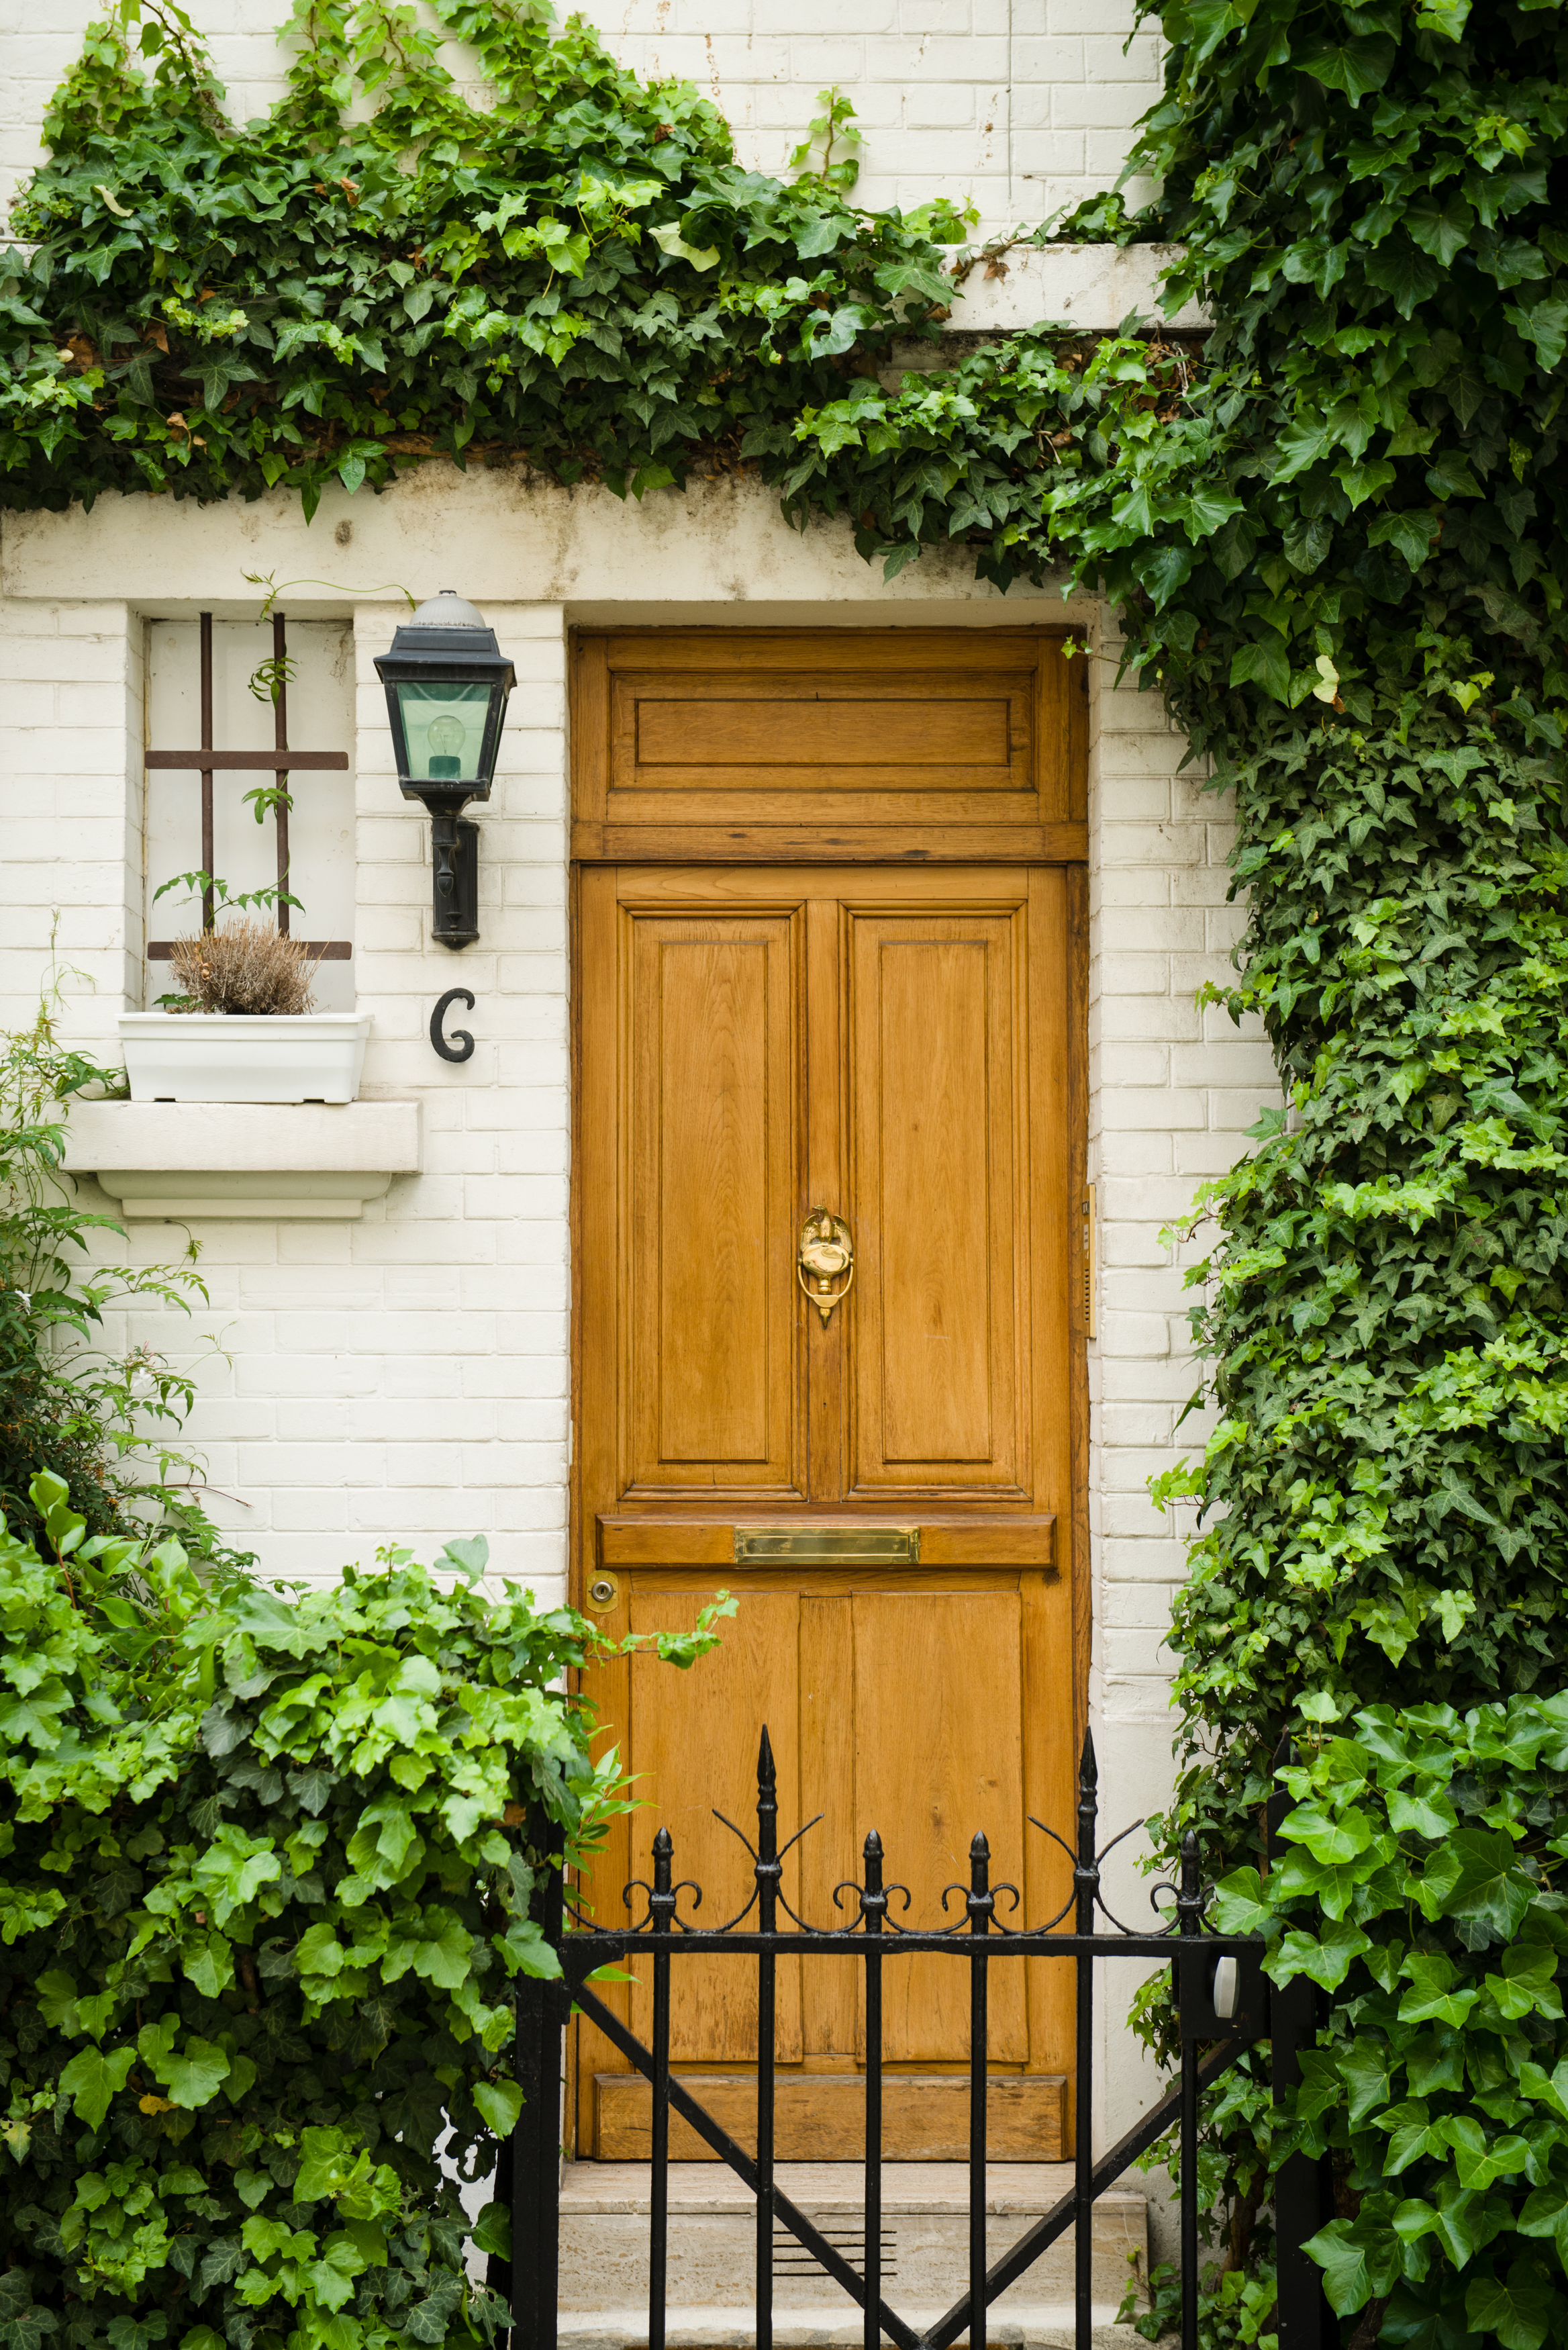 The vine branches frame the doorway as well as creating a sense of place by giving us an idea of the neighborhood. Photo by William Lounsbury.